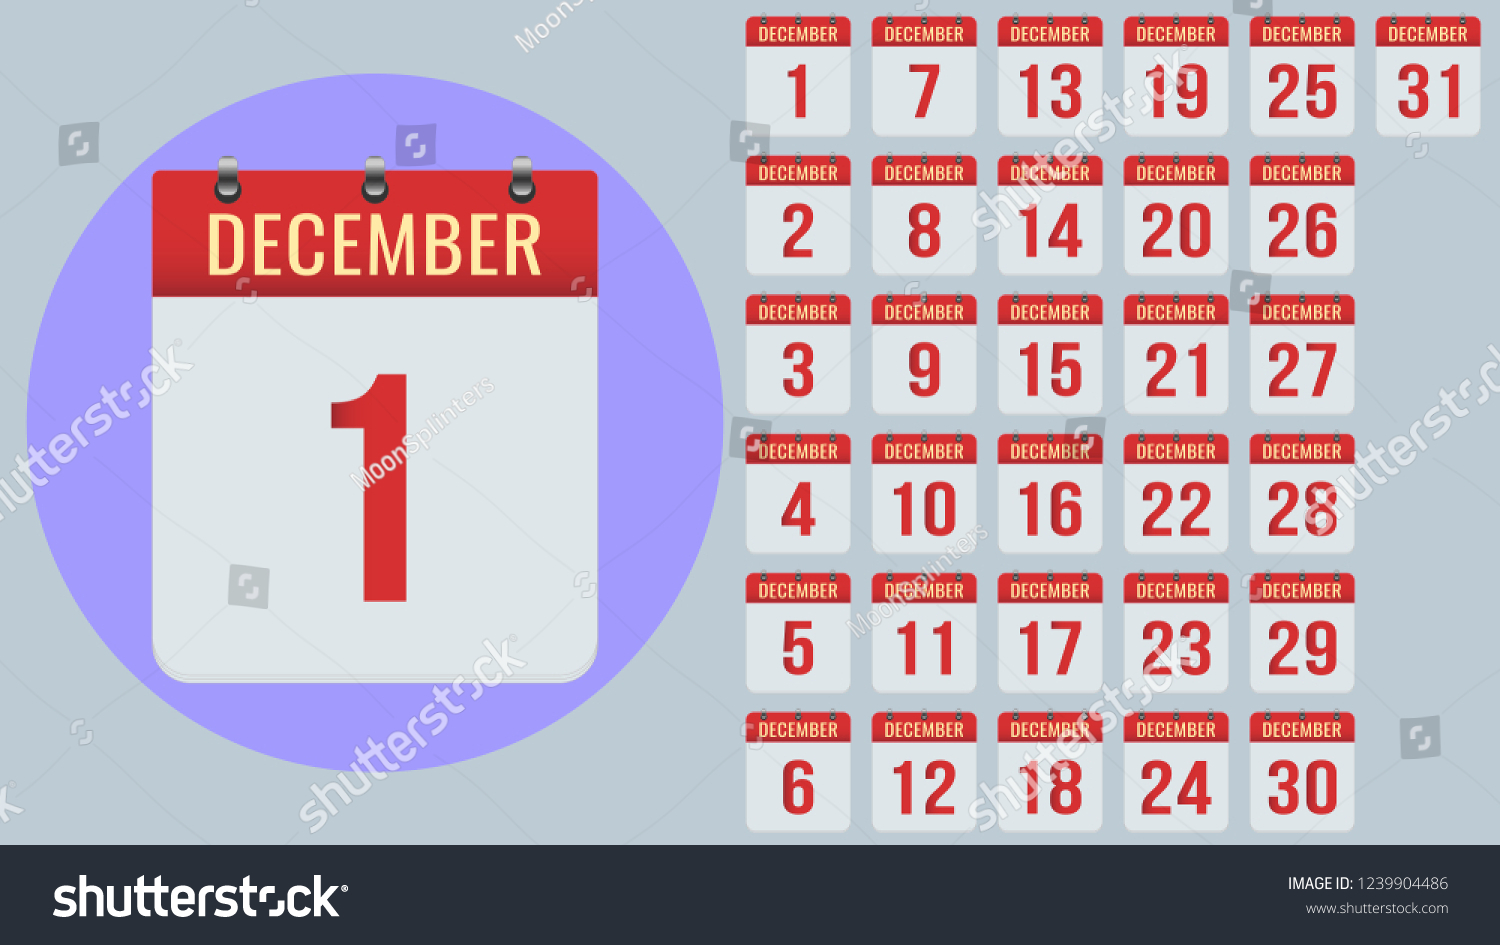 December Flat Daily Calendar Icon Set Stock Vector (Royalty Free